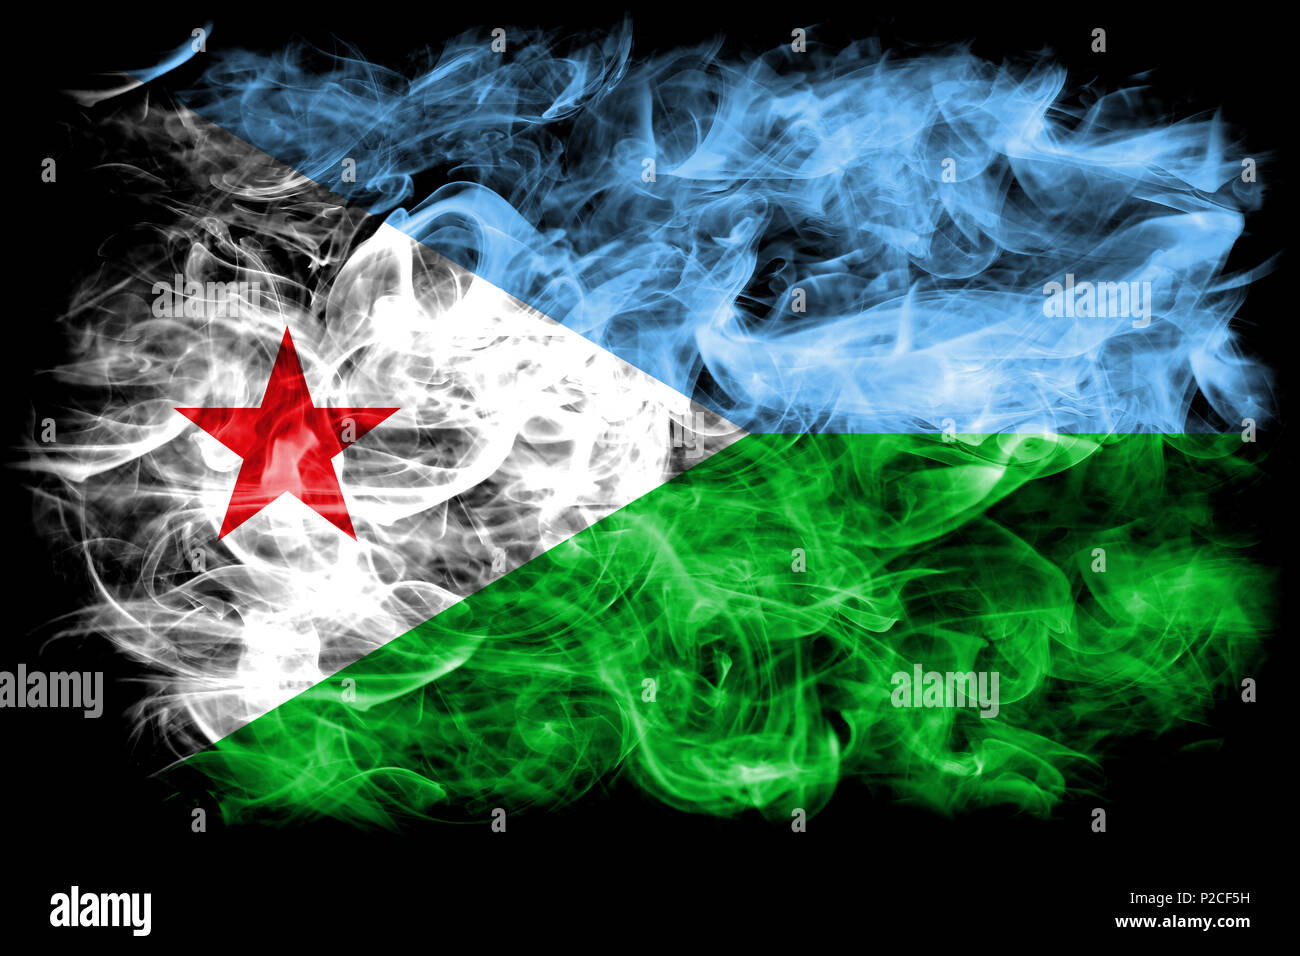 Djibouti smoke flag - Stock Image